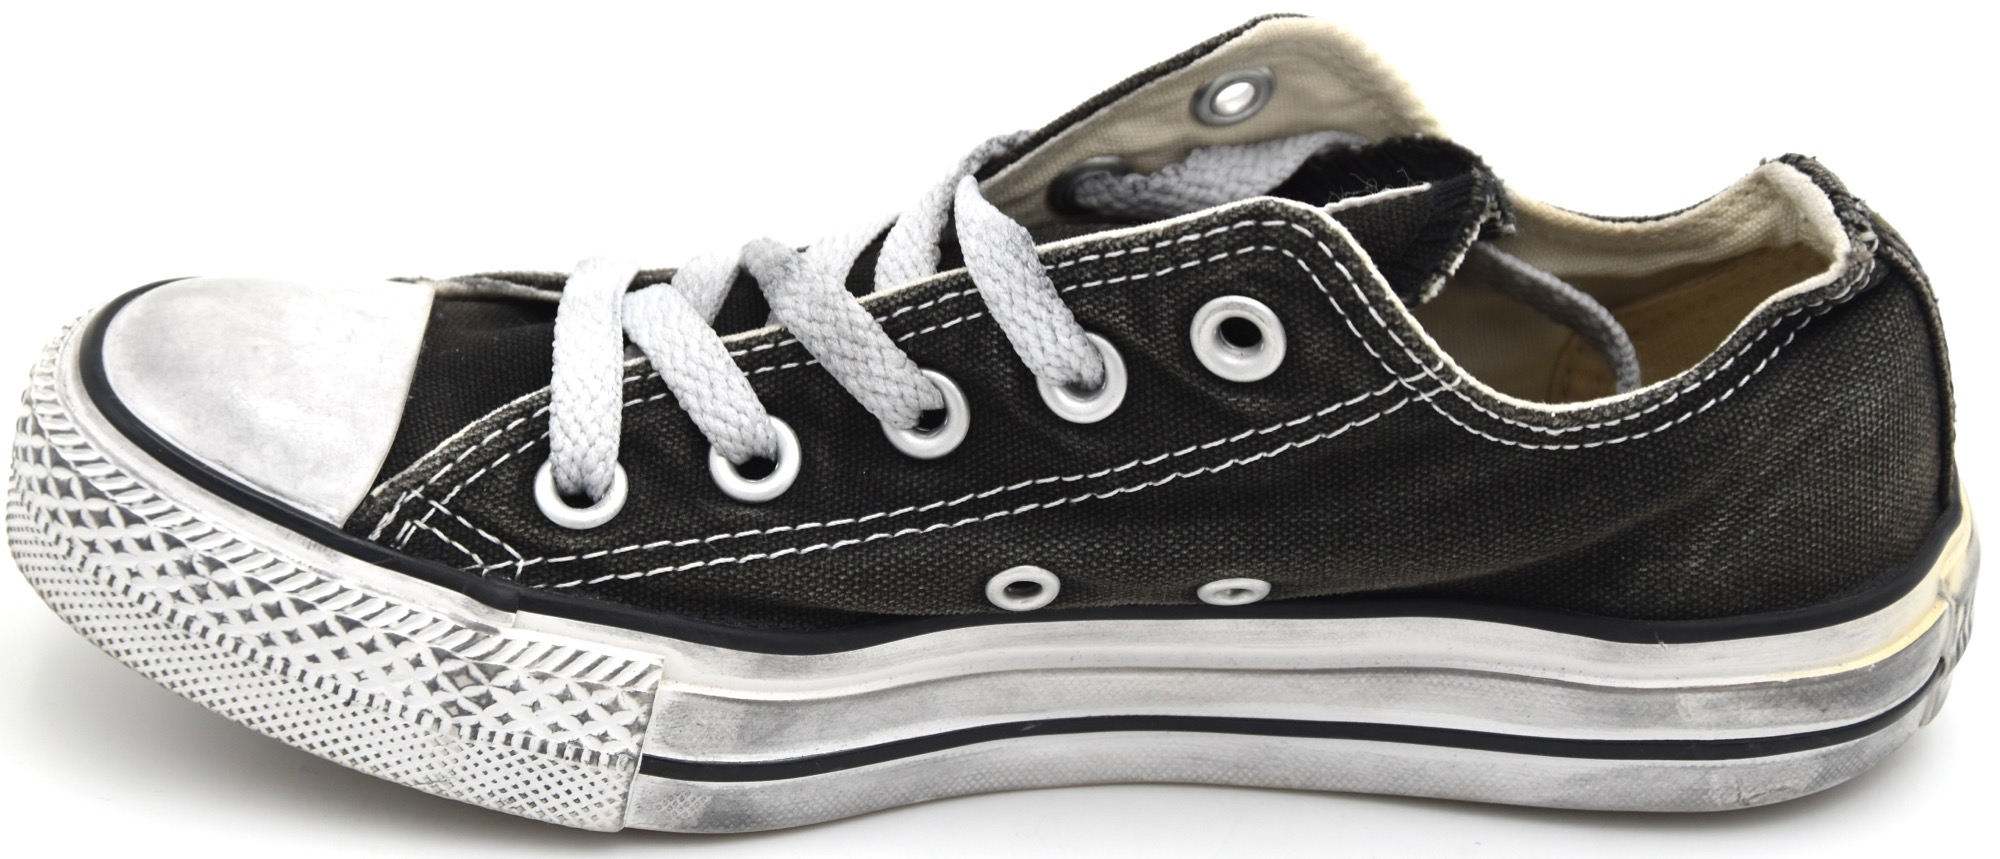 Details about CONVERSE WOMAN SNEAKER SHOES CASUAL CODE ALL STAR OX CANVAS LTD 1C278 DEFECT